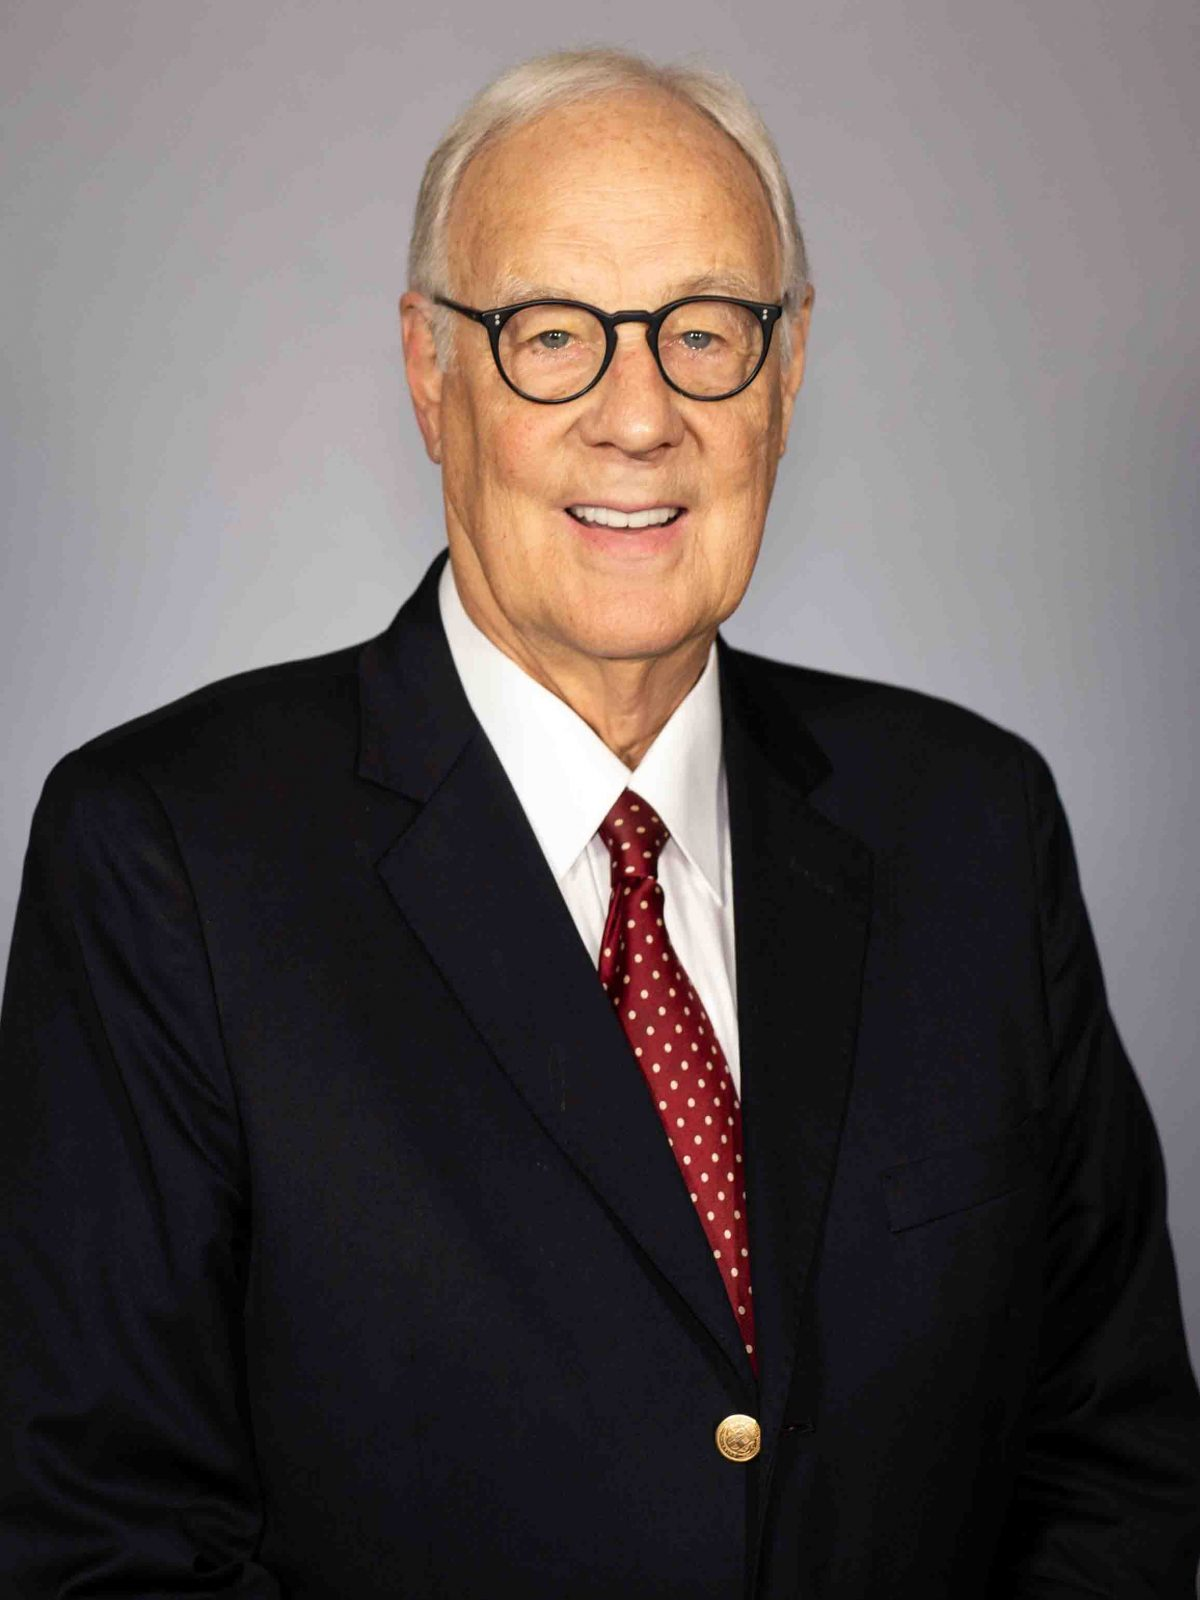 Alumni President Devoted To BYU, Service